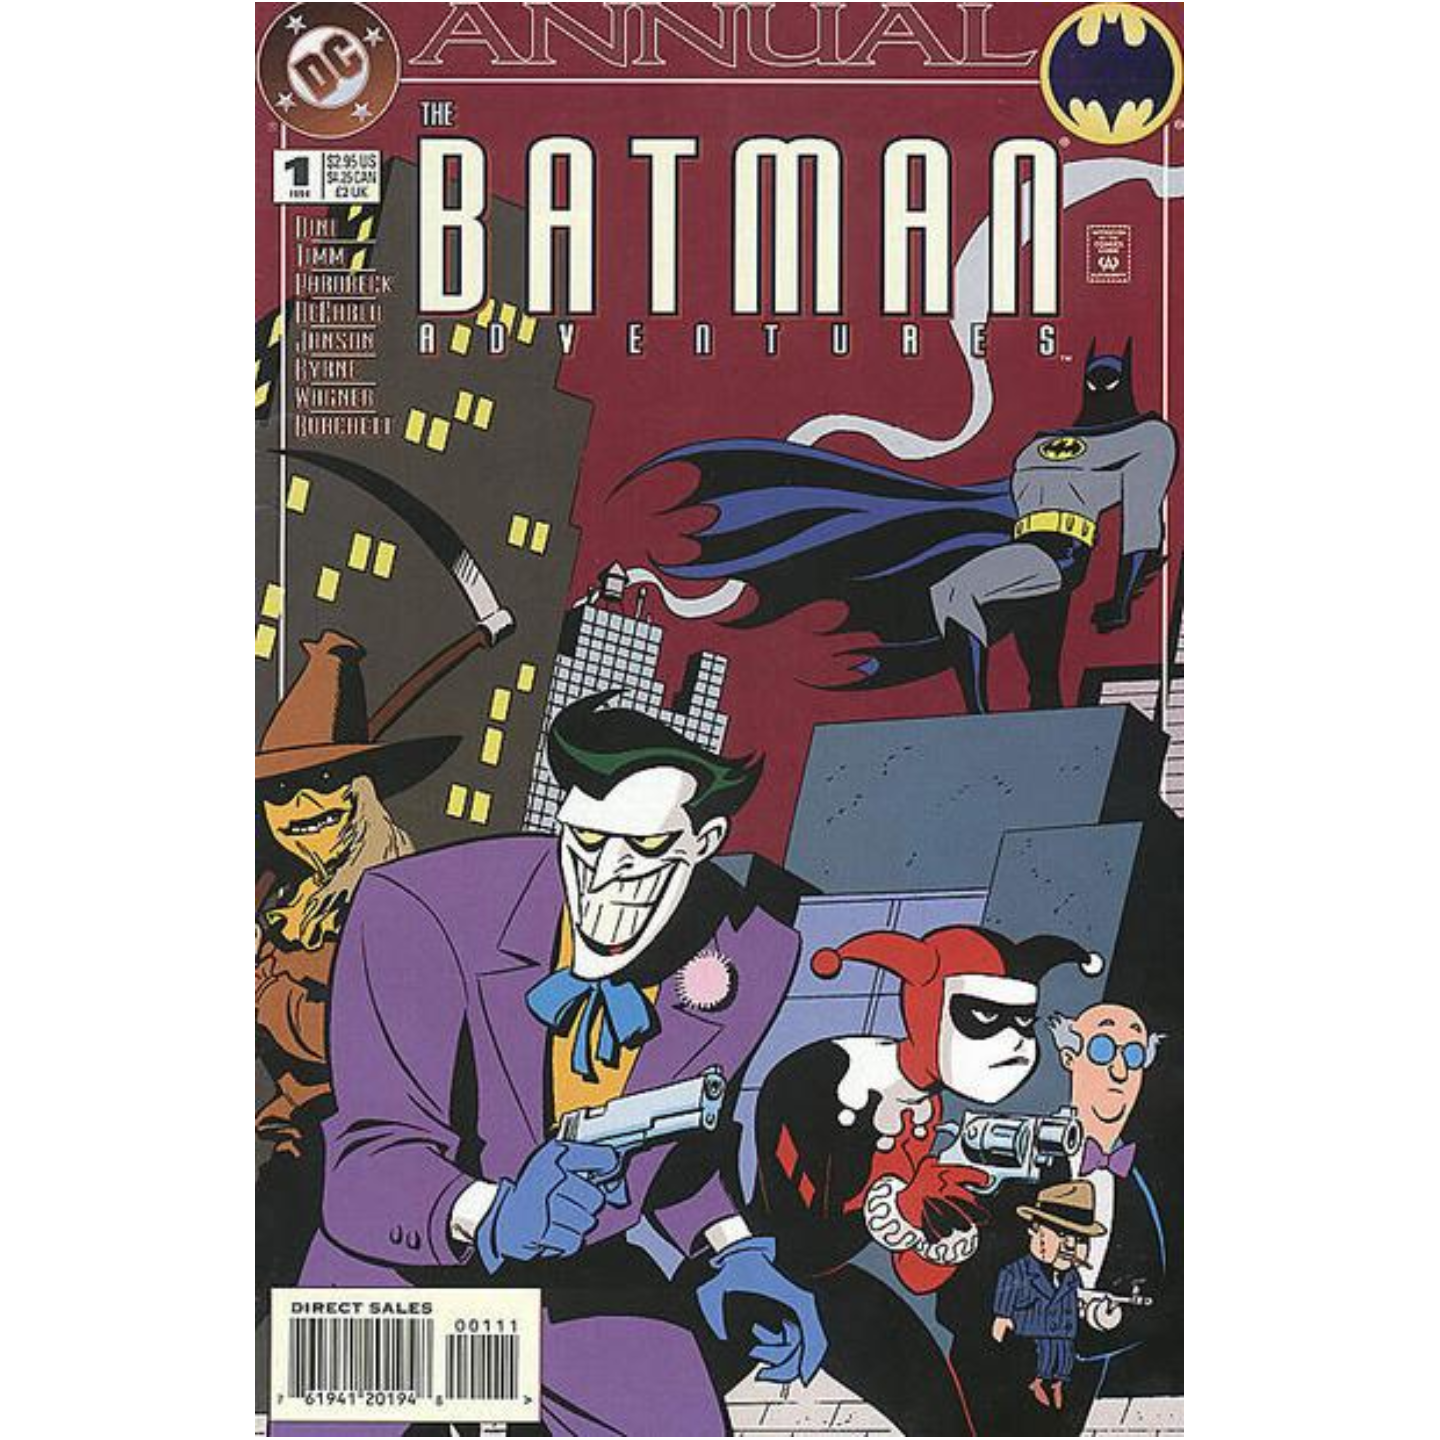 THE BATMAN ADVENTURES ANNUAL 1 KEY ISSUE